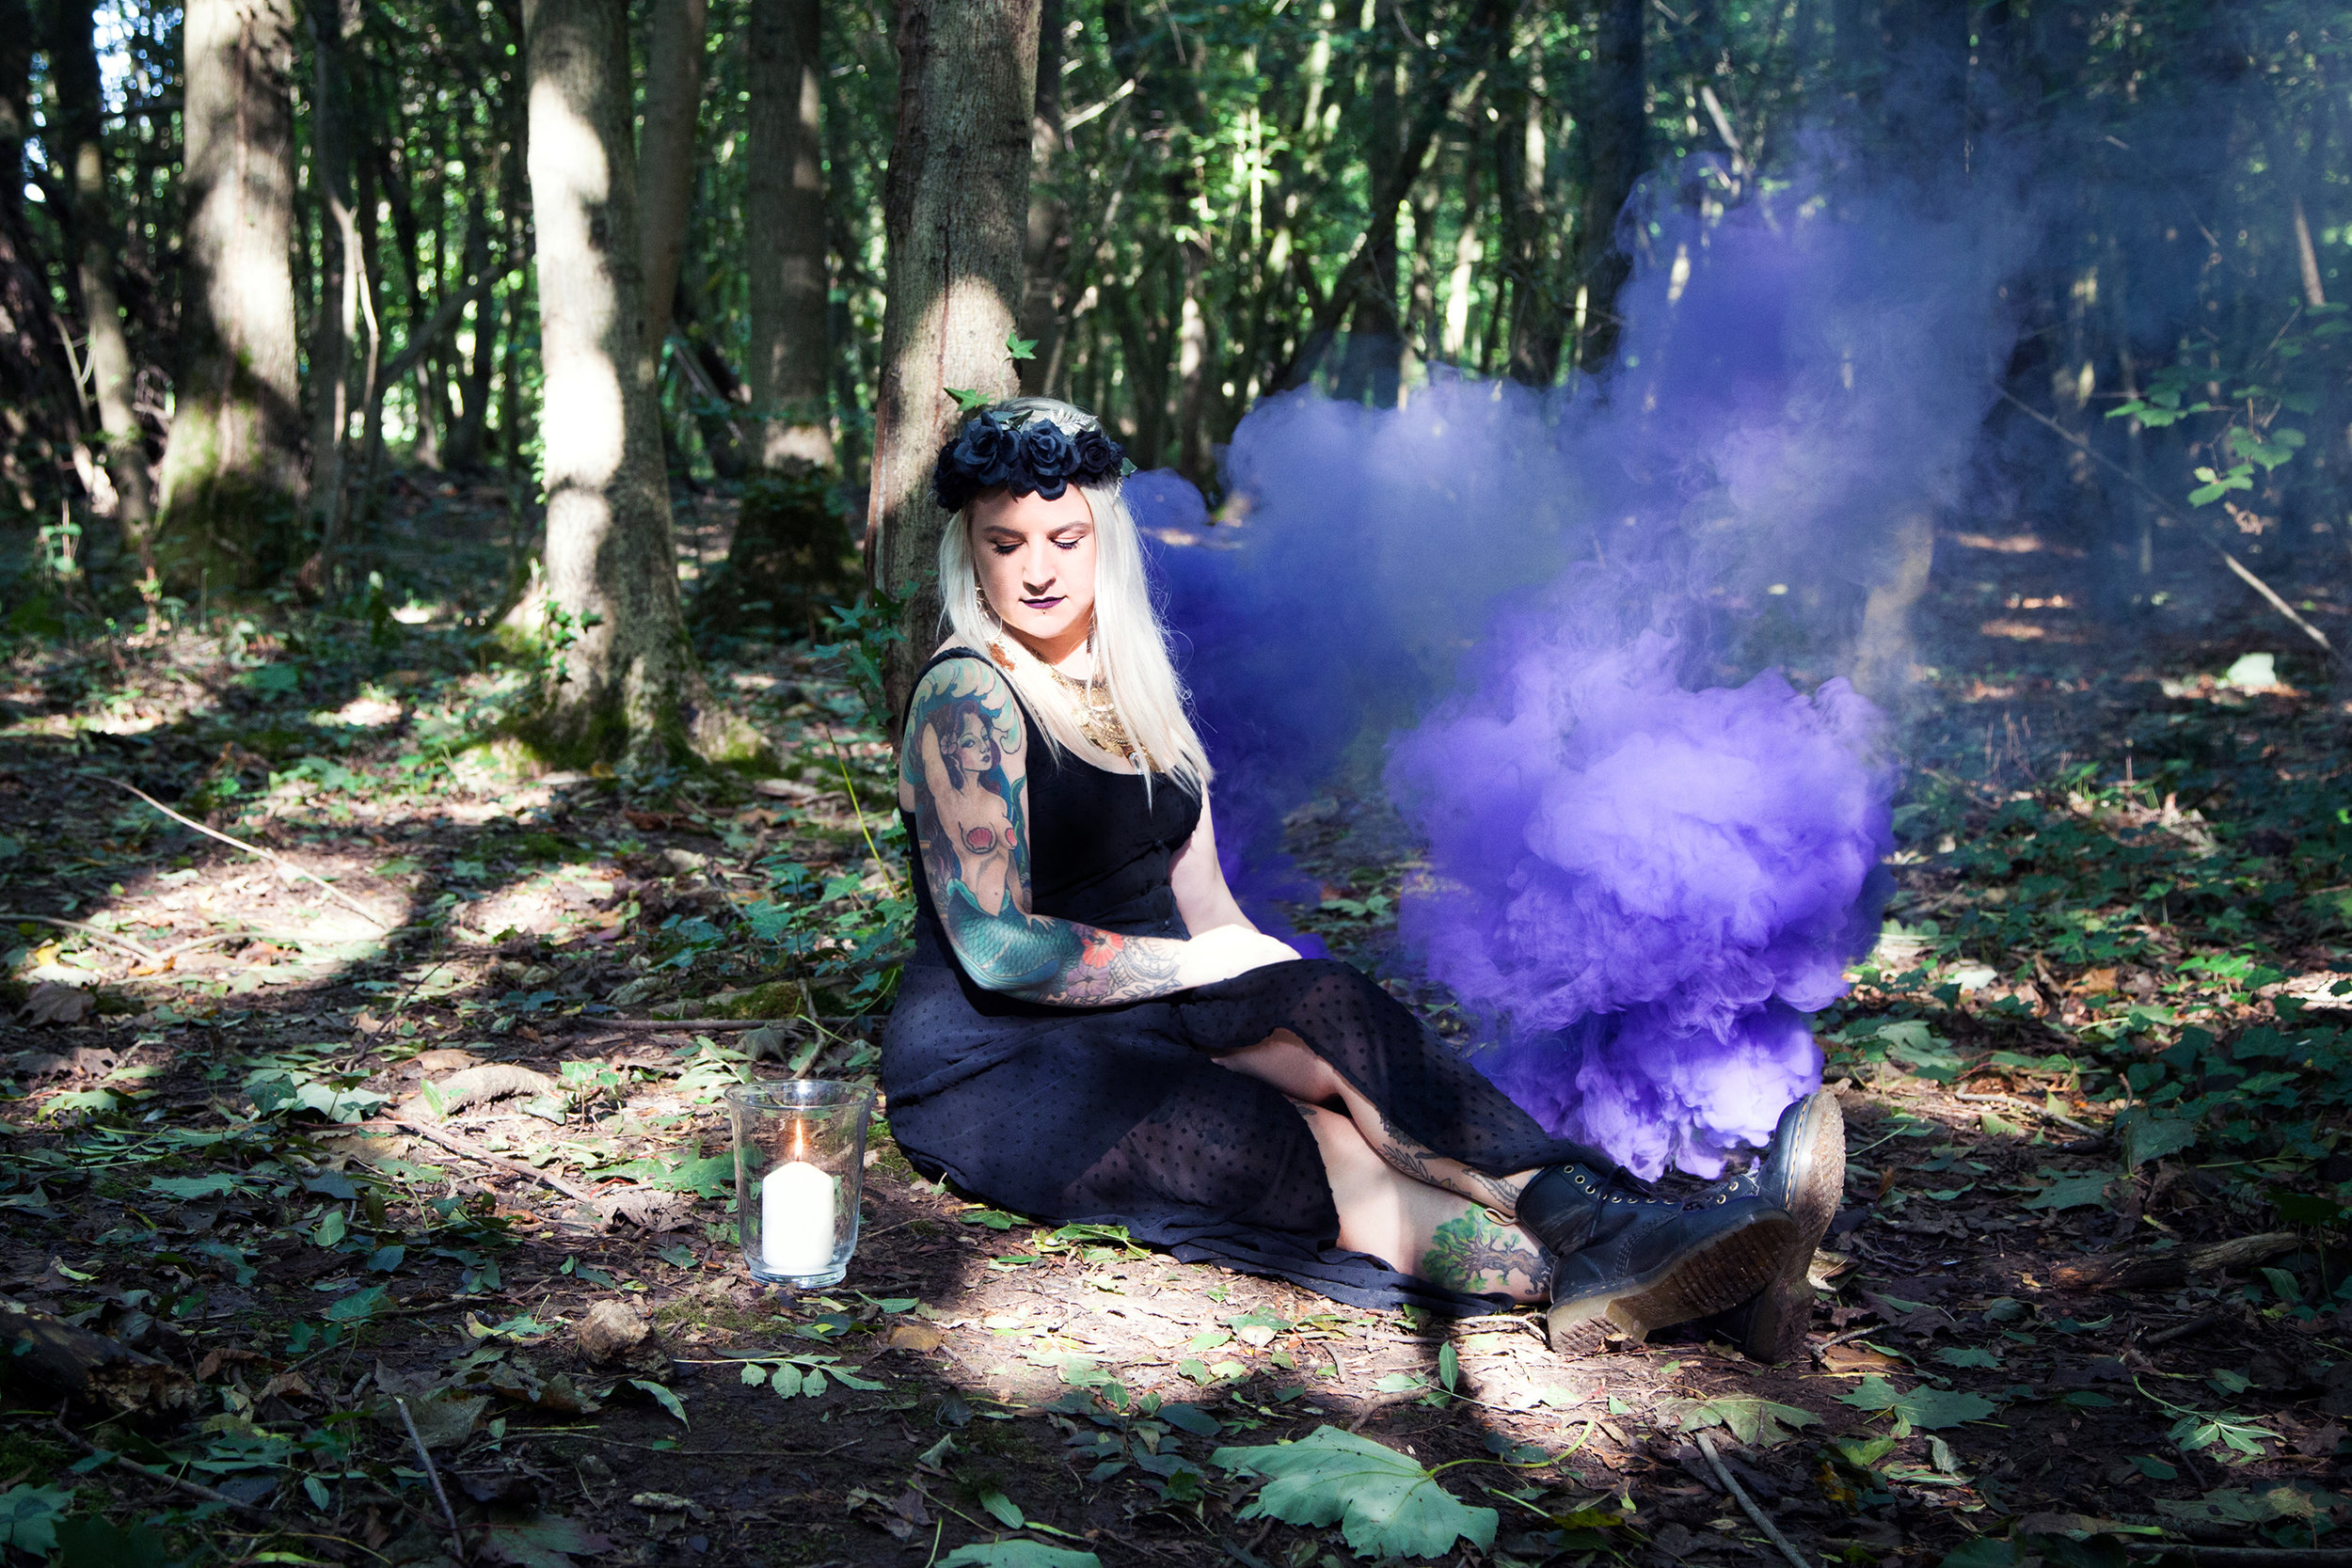 ABOUT THIS WITCH - Katie is the witch behind Urban Witchery. She is an Astrologer and coach for the magically inclined as well as the architect behind the Urban Witchery planner; the essential tool for the modern witch. An urban witch is the name given to witches who live in an urban environment and use modern practices of Witchcraft. Be it in a high-rise flat that towers over the city, in a suburban cul-de-sac, in a quiet town or a manor house; Magick is being made all around us, by Magick makers of all walks of life.